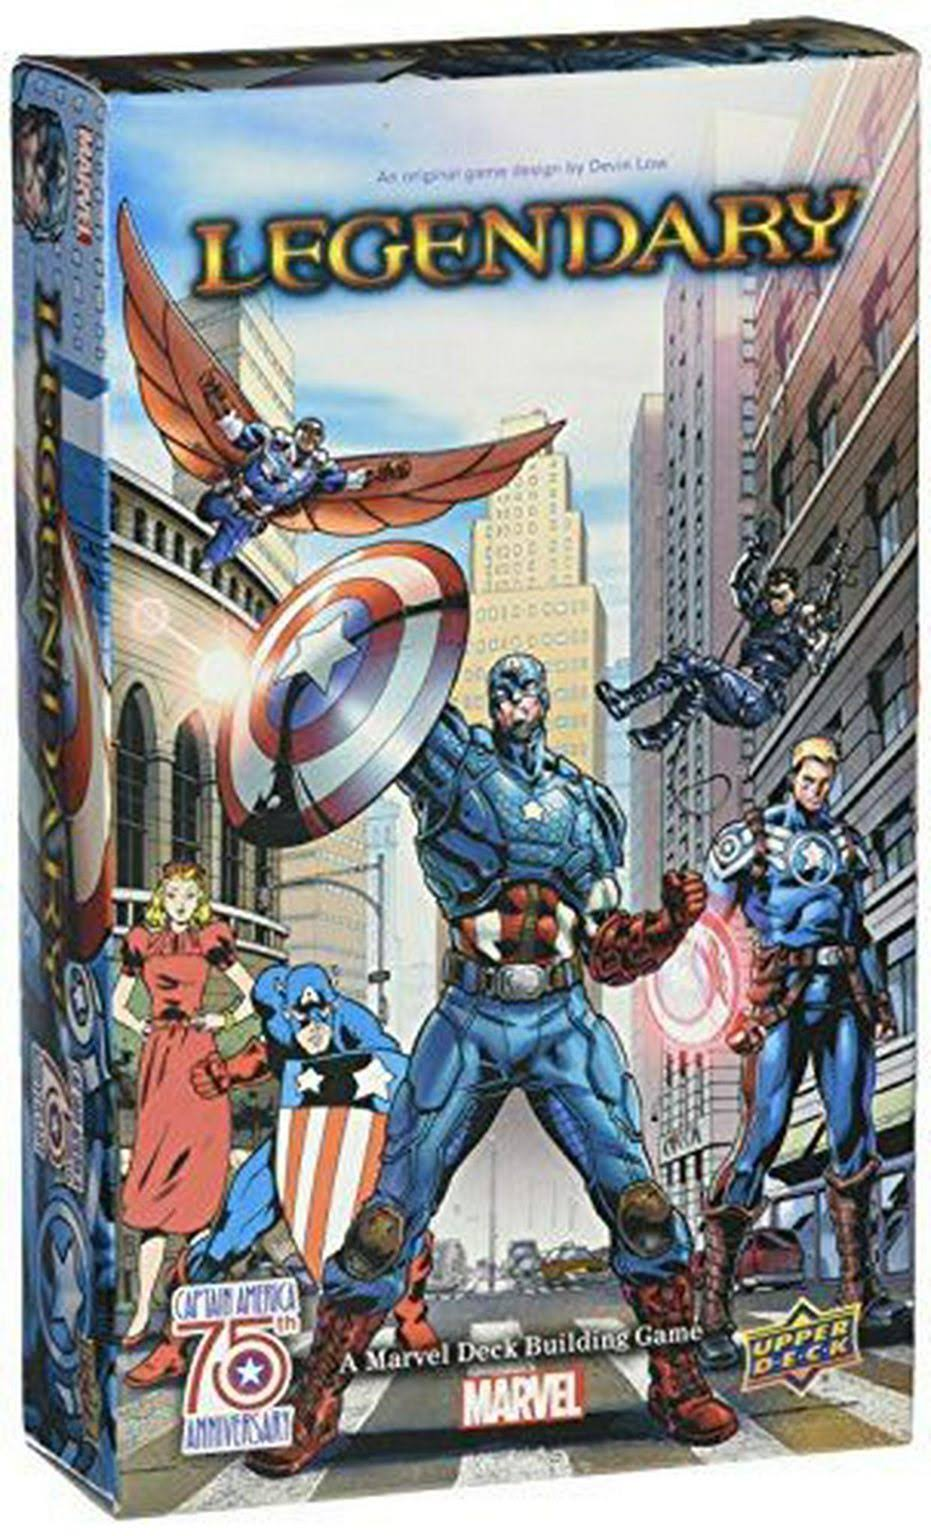 Legendary Marvel Deck Building Game - Captain America Small Box Expansion